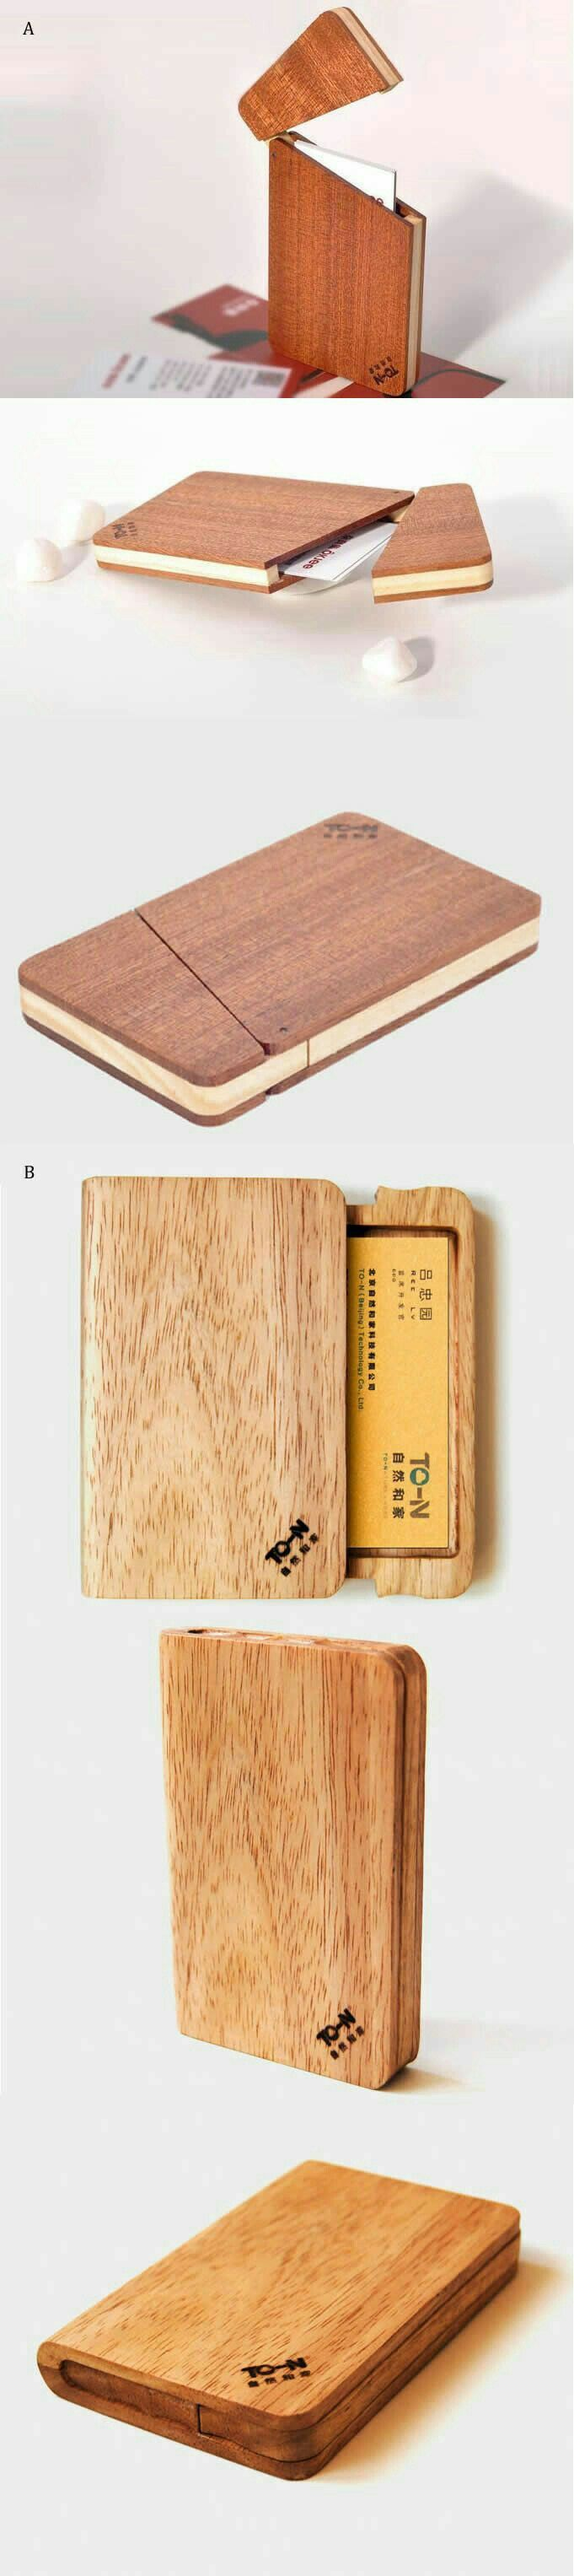 66 best Business card holders. images on Pinterest | Bicycle ...